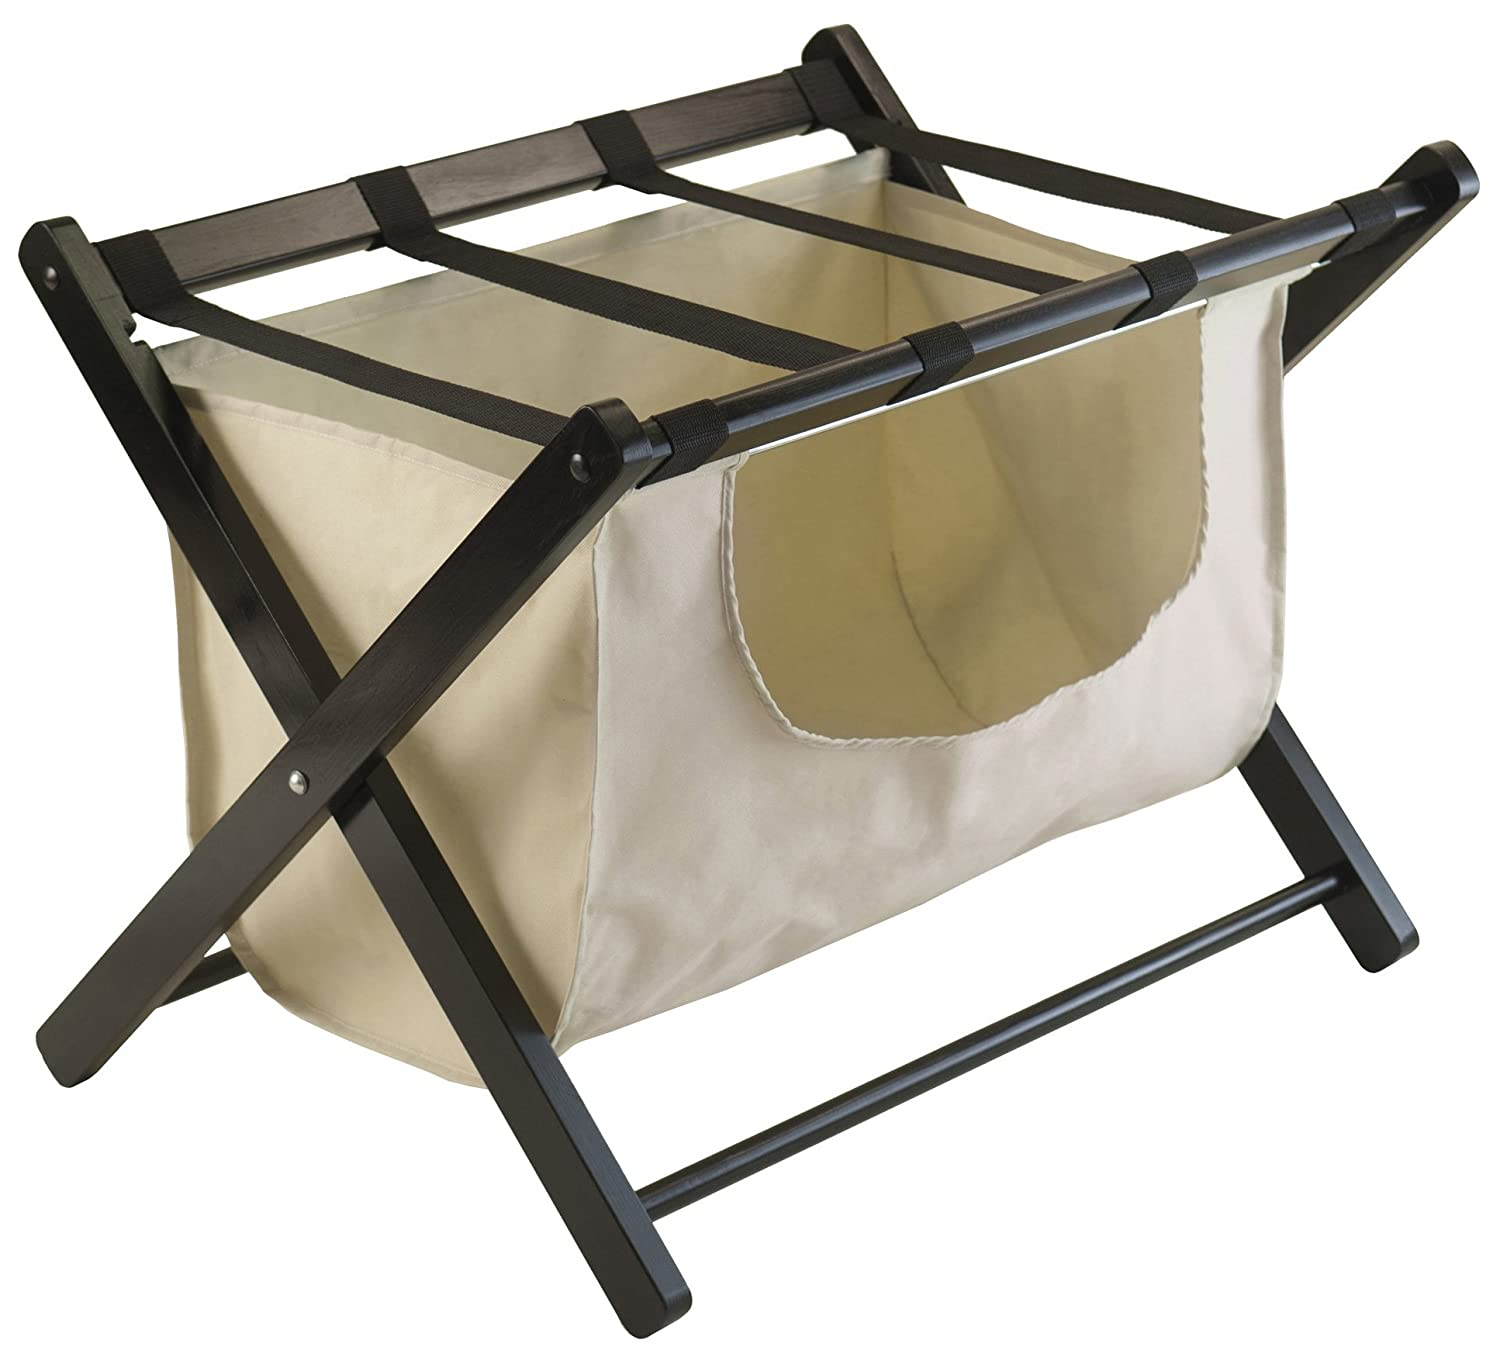 Winsome Wood Dora Luggage Rack with Removable Fabric Basket 92535